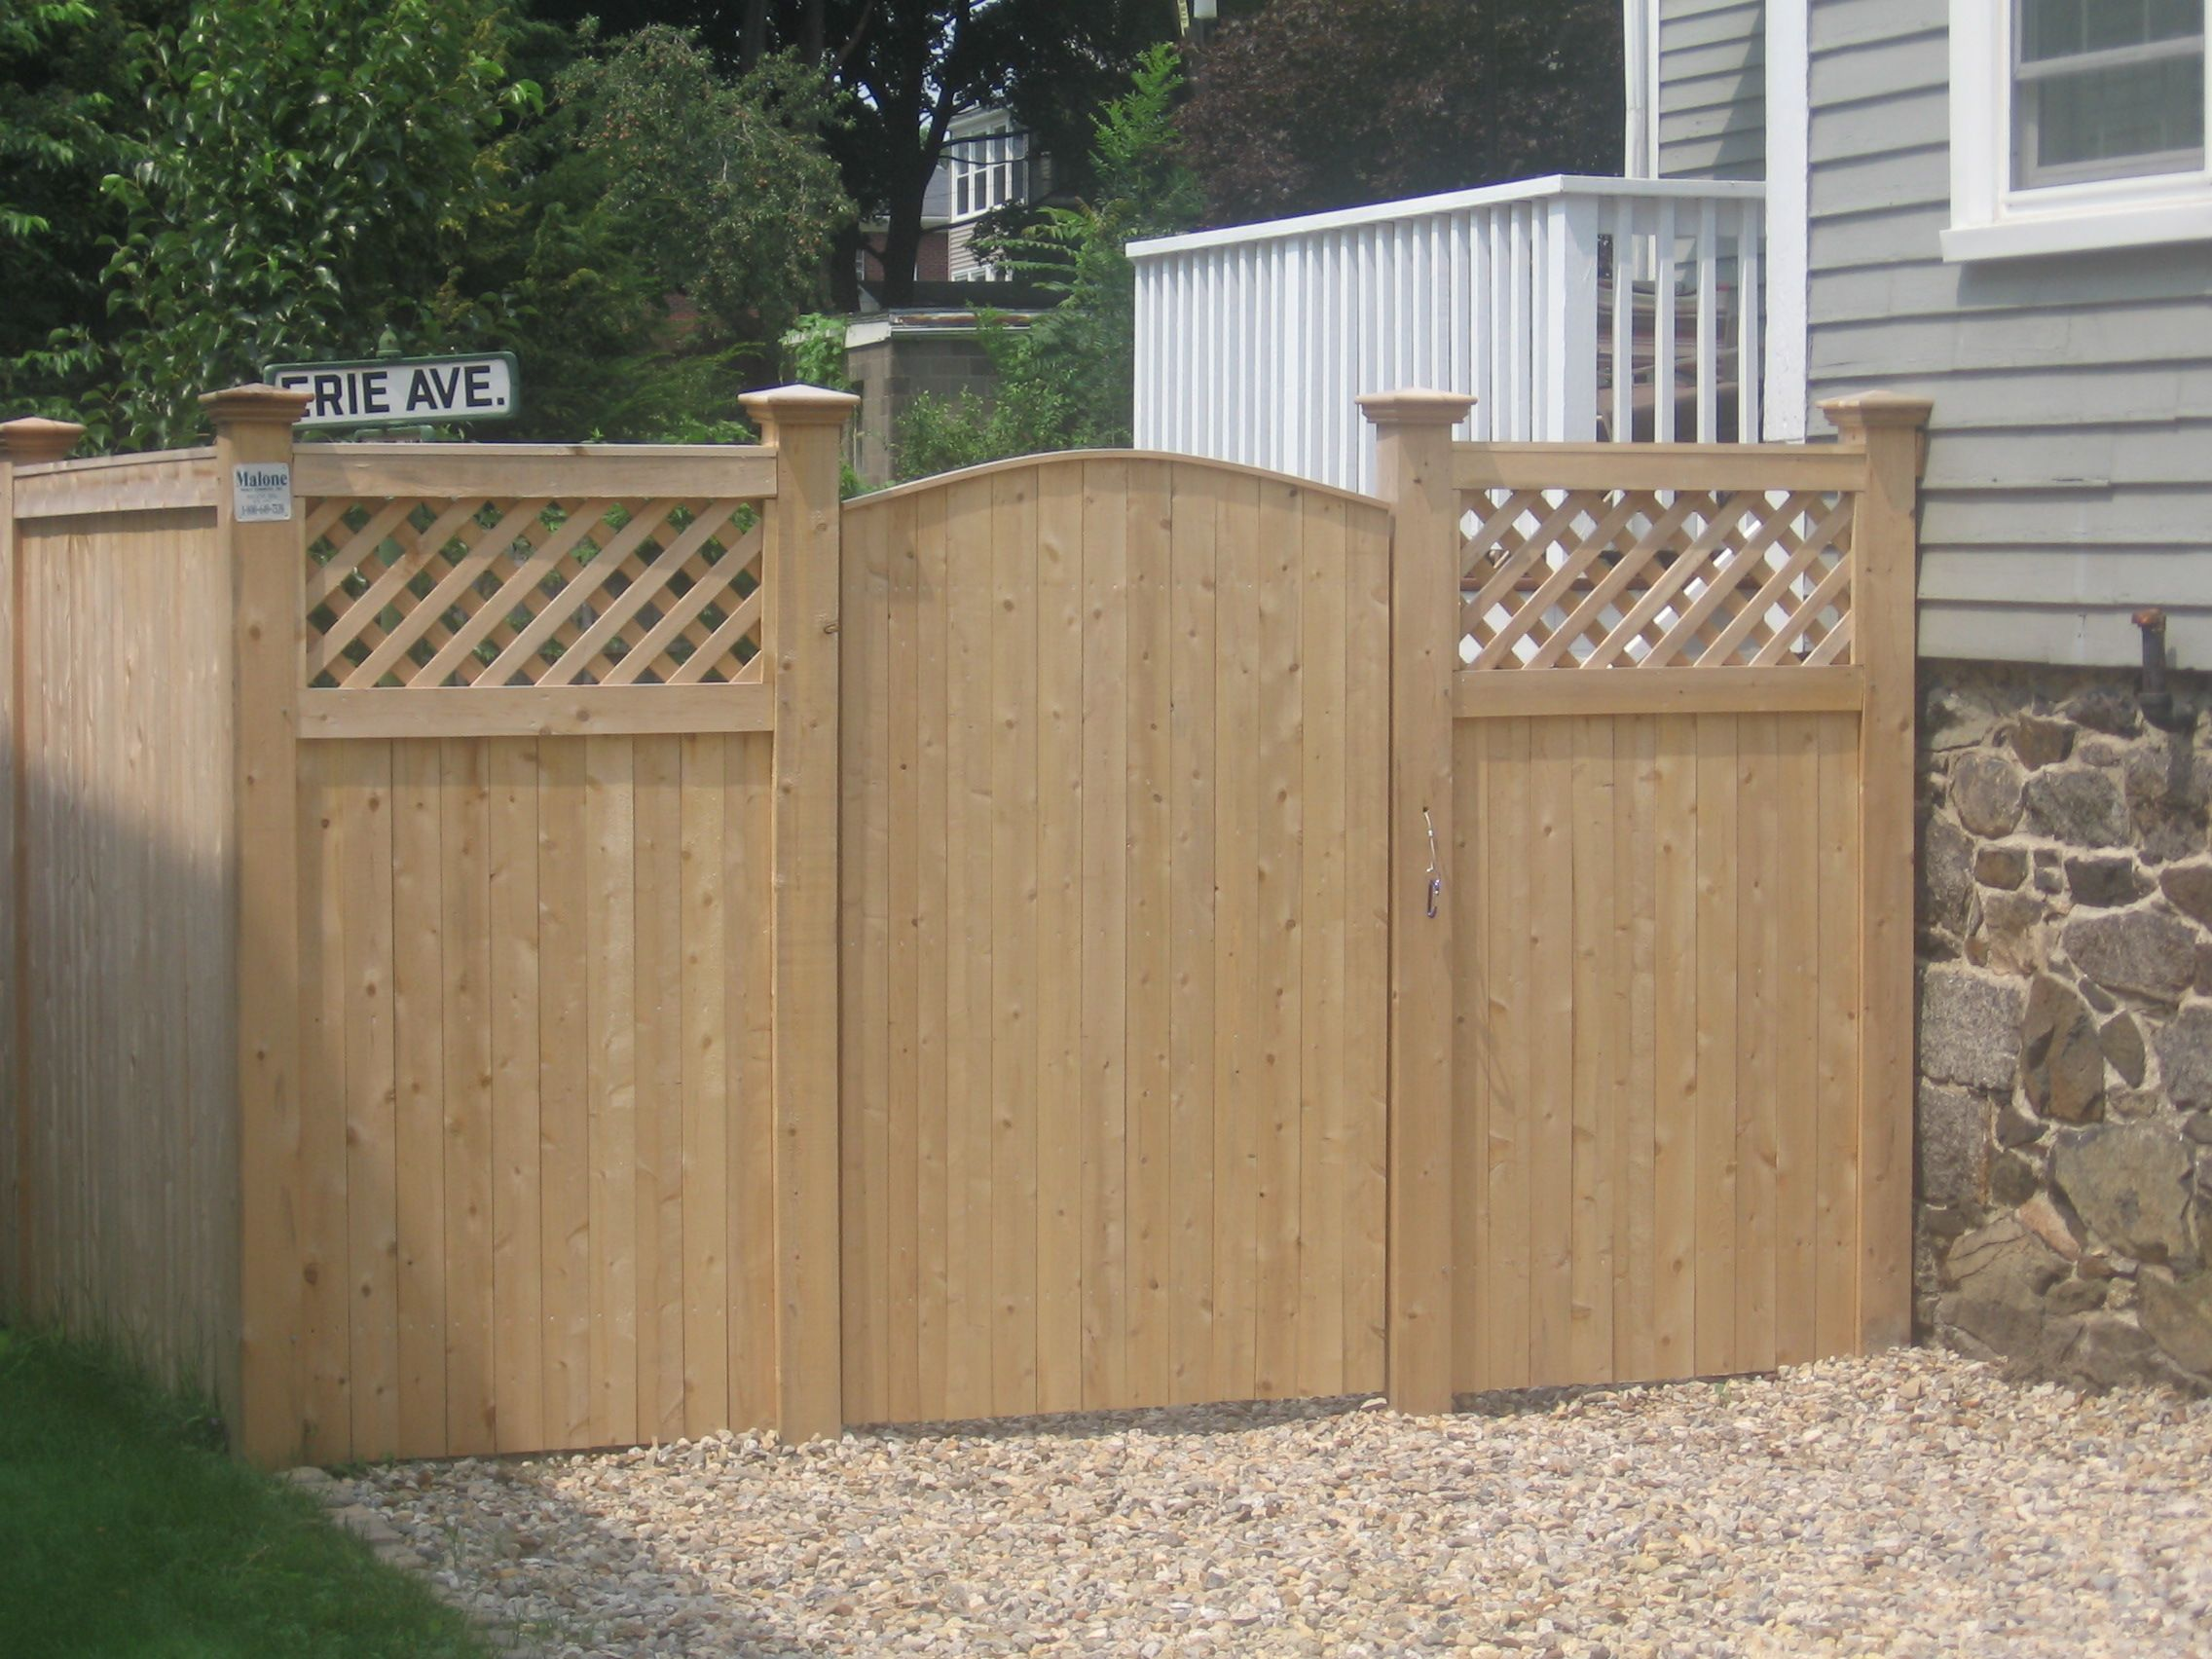 gates for privacy fences posts related to gate privacy. Black Bedroom Furniture Sets. Home Design Ideas